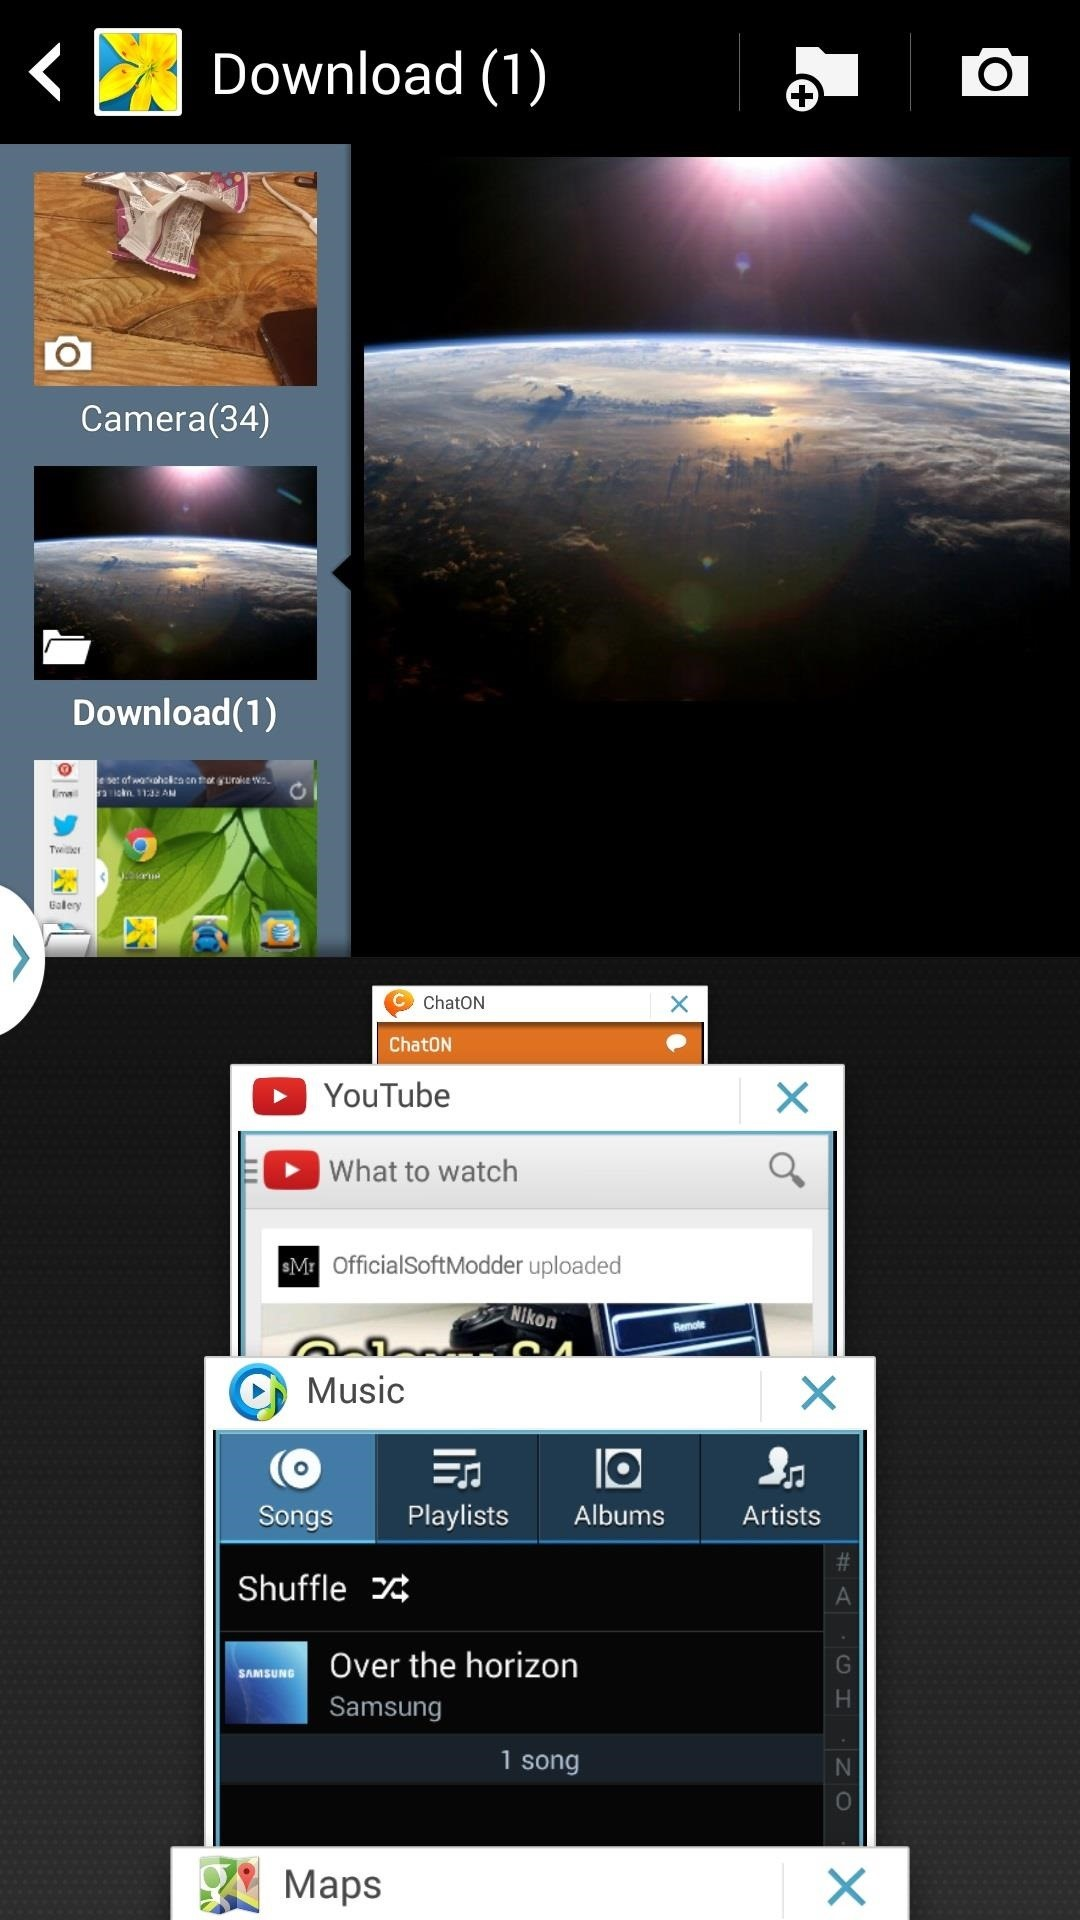 How to scrapbook youtube note 3 - Finally If There S A Specific Combination Of Apps That You Use Frequently Say Youtube And Twitter You Can Create A Recipe By Scrolling Down To The Bottom